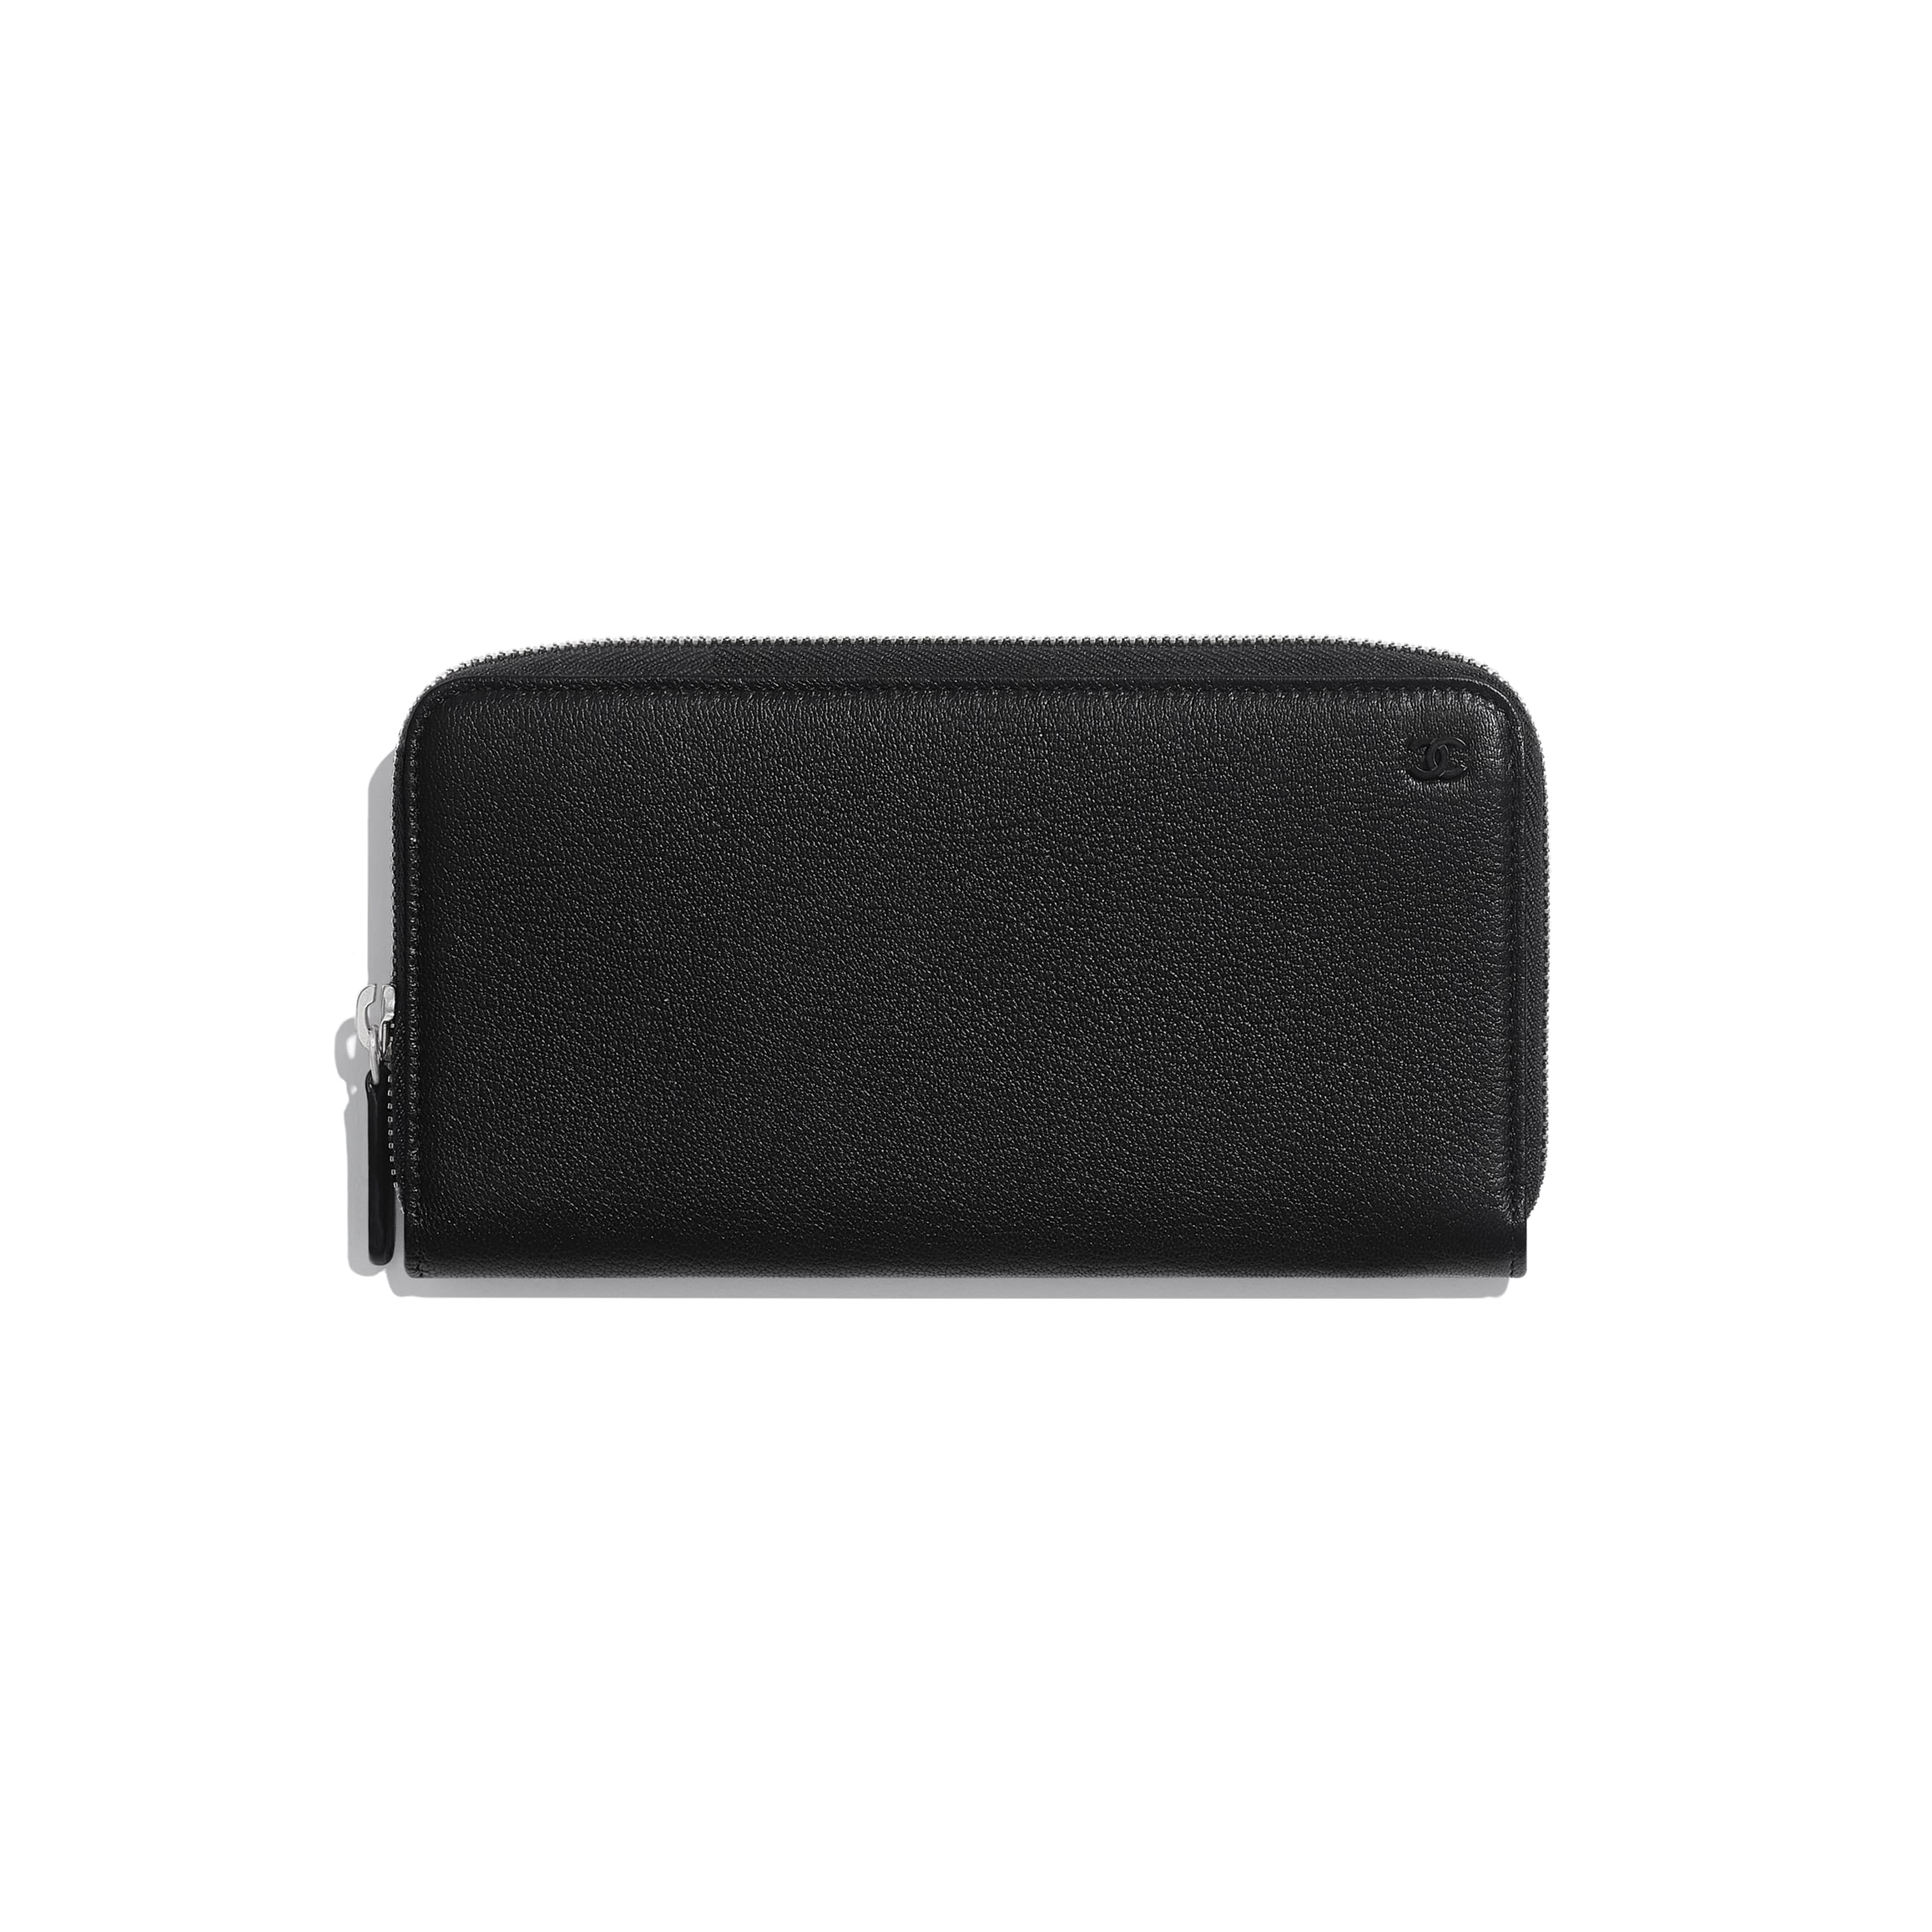 Long Zipped Wallet - Black - Goatskin & Lacquered Silver-Tone Metal - CHANEL - Default view - see standard sized version